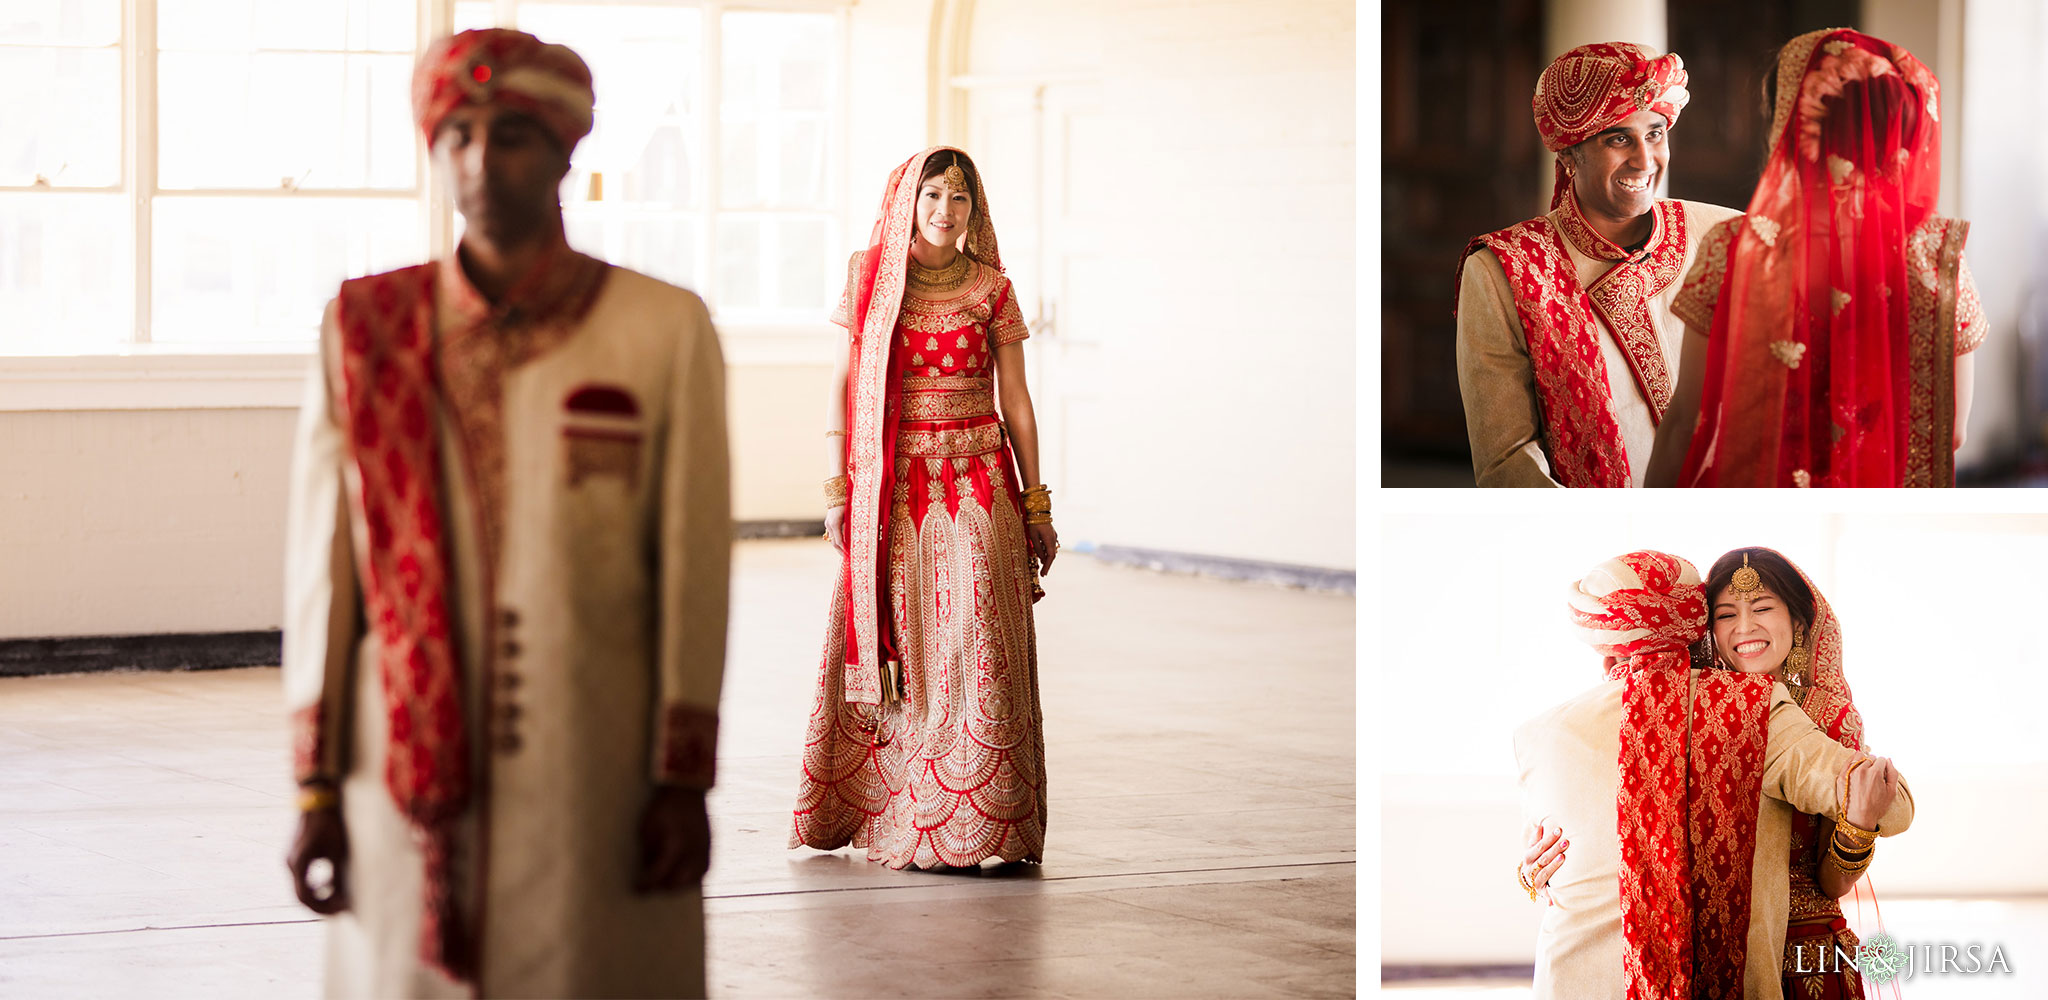 10 the ebell of los angeles indian wedding first look photography